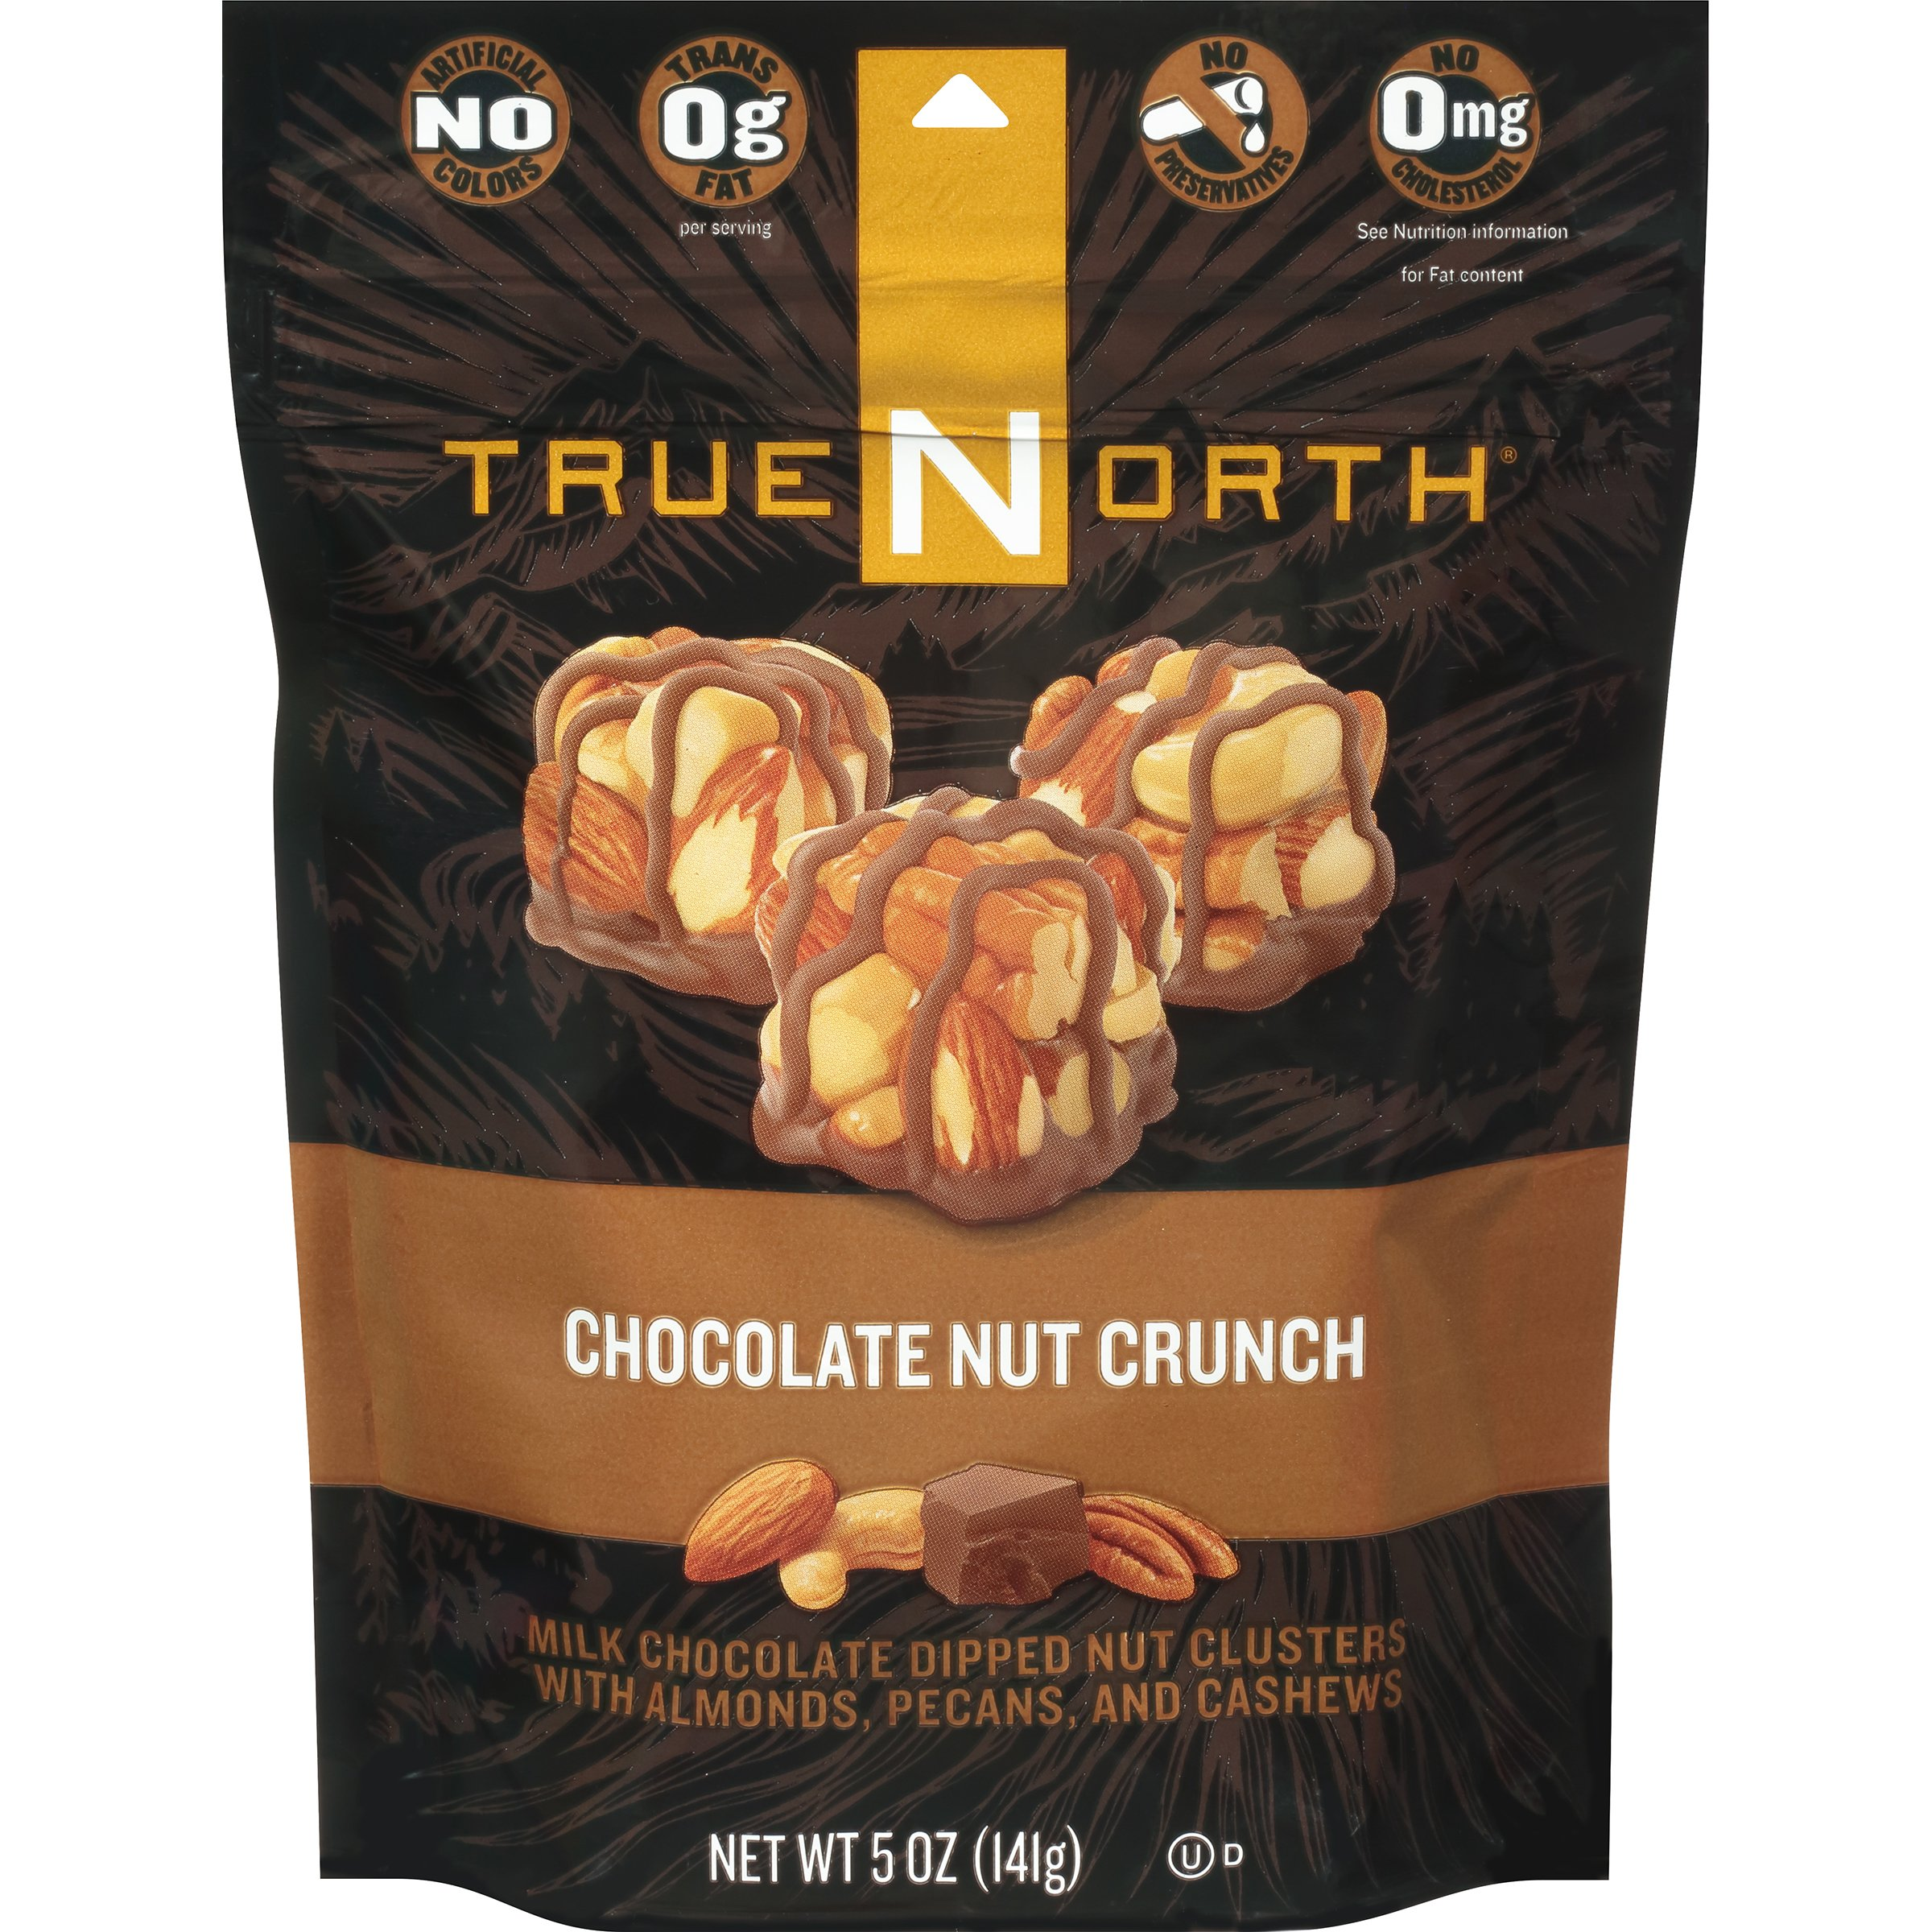 TrueNorth Nut Clusters, Chocolate Nut Crunch, 5 Ounce (Pack of 6)